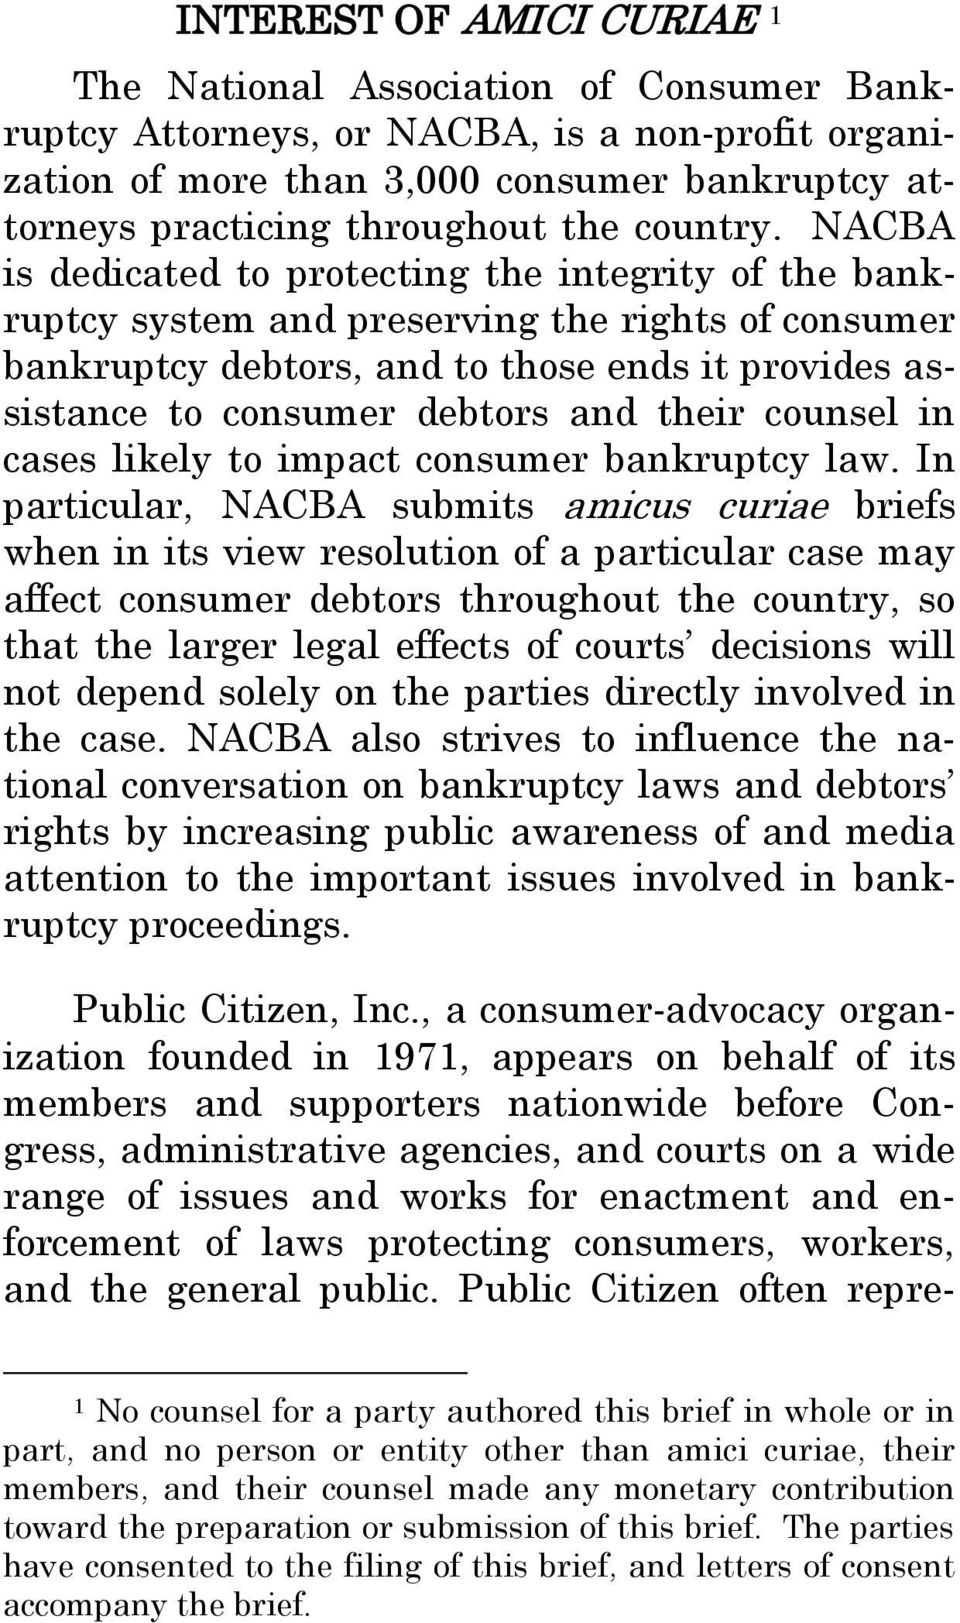 NACBA is dedicated to protecting the integrity of the bankruptcy system and preserving the rights of consumer bankruptcy debtors, and to those ends it provides assistance to consumer debtors and